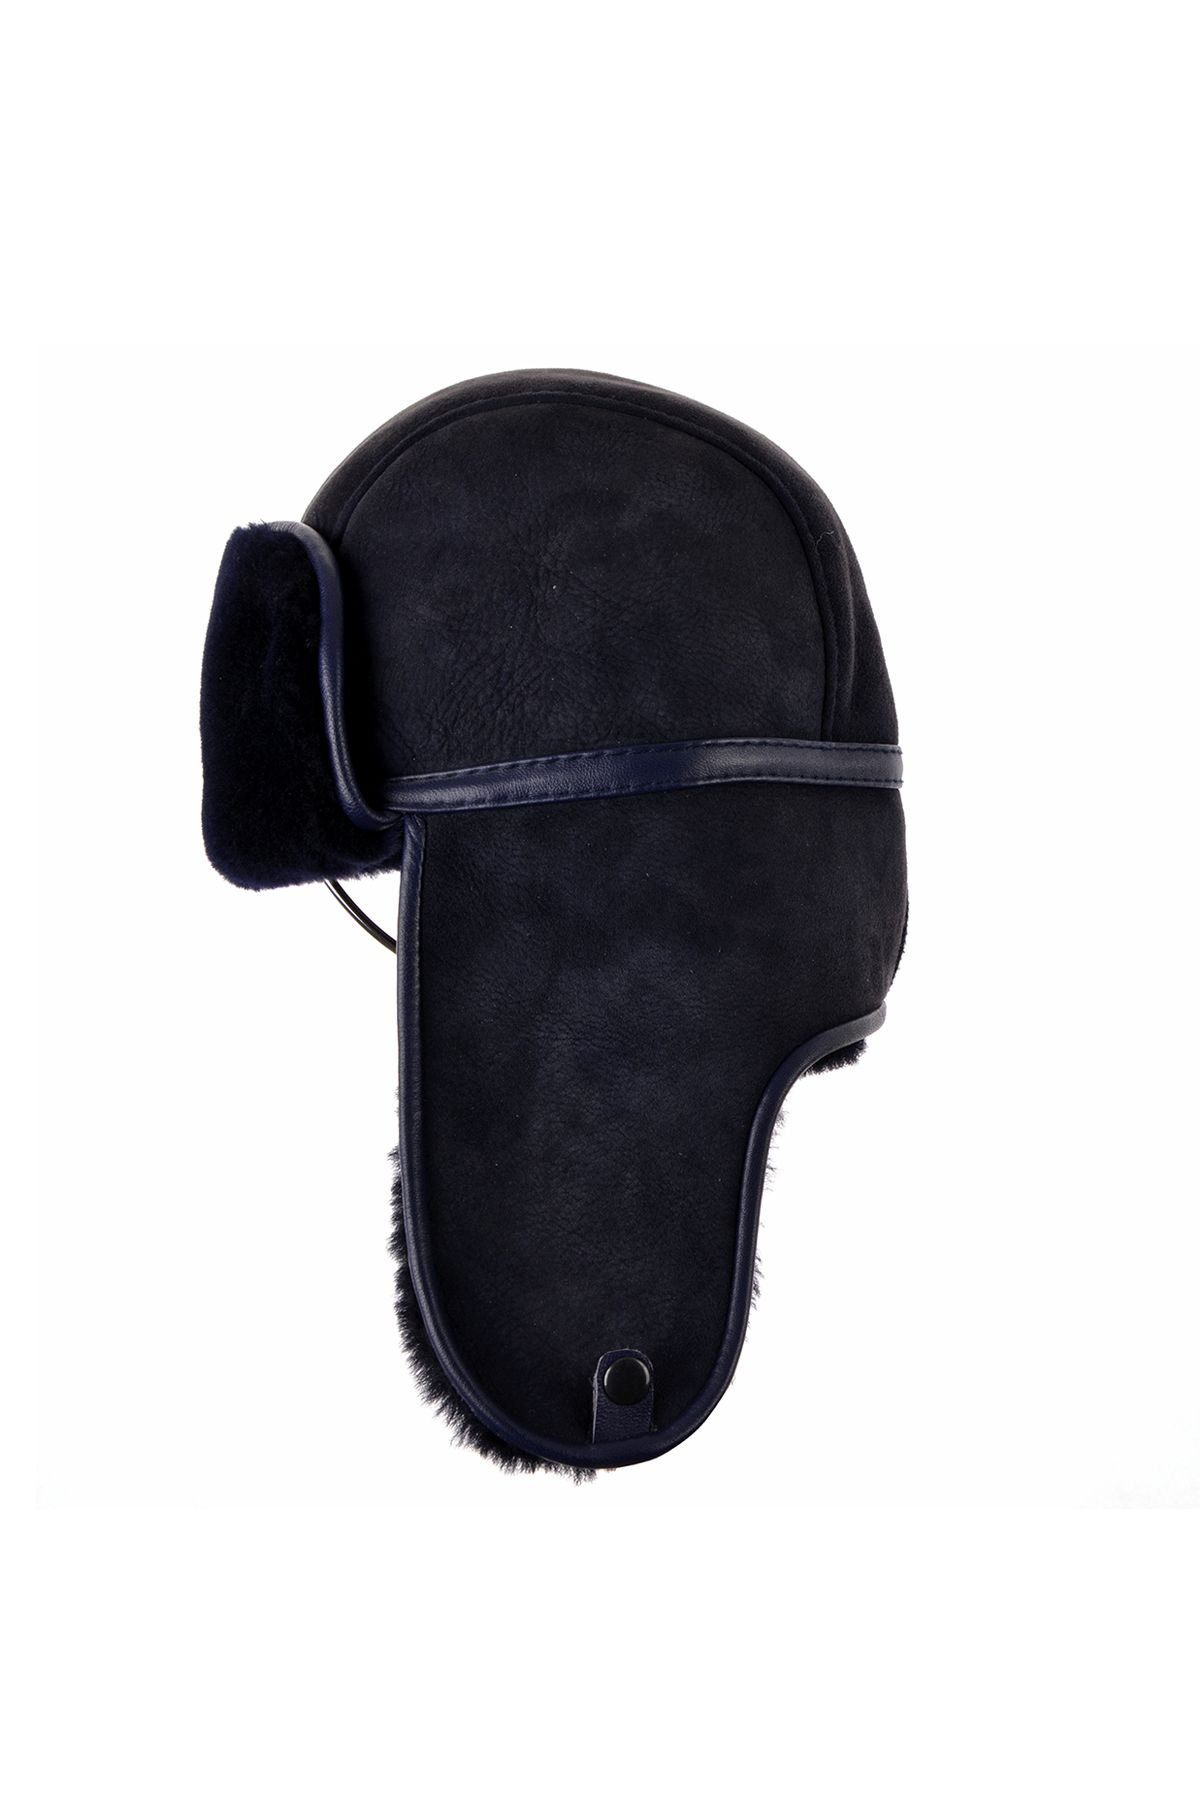 Pegia Ear-Flaps Hat From Genuine Suede And Fur Navy blue